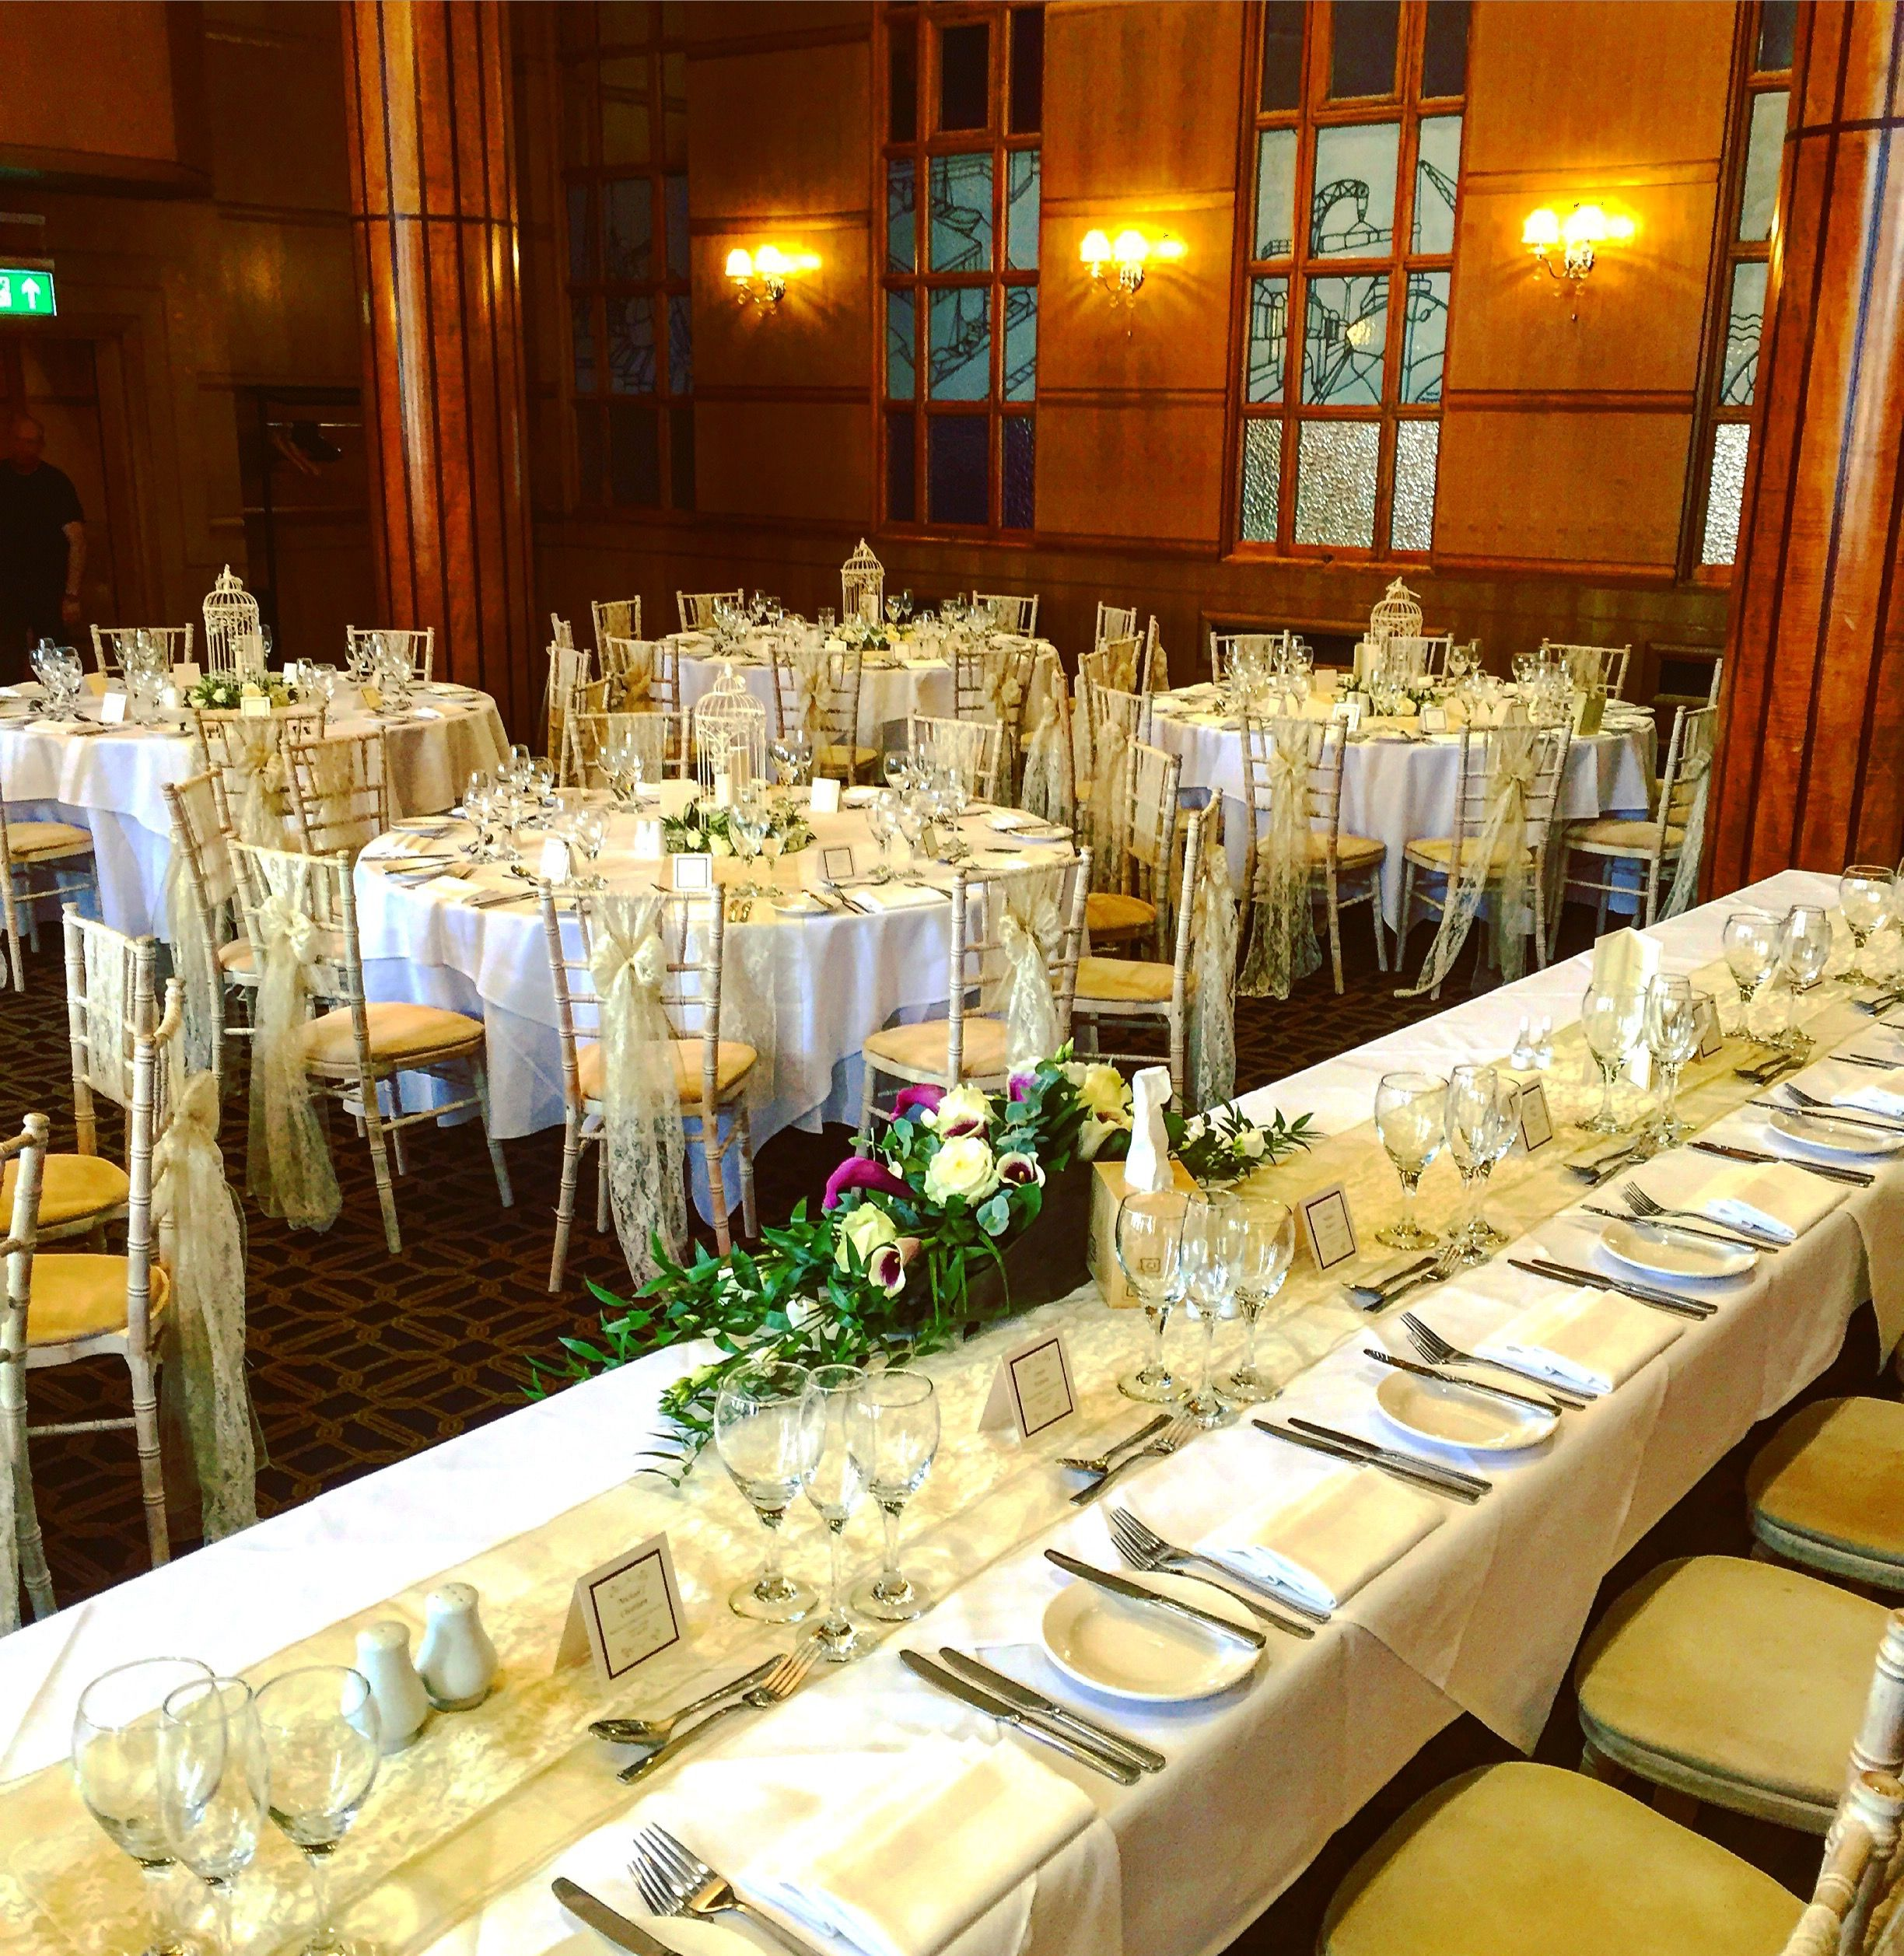 Our Art Deco Wedding set up at the impressive Vermont Hotel ...